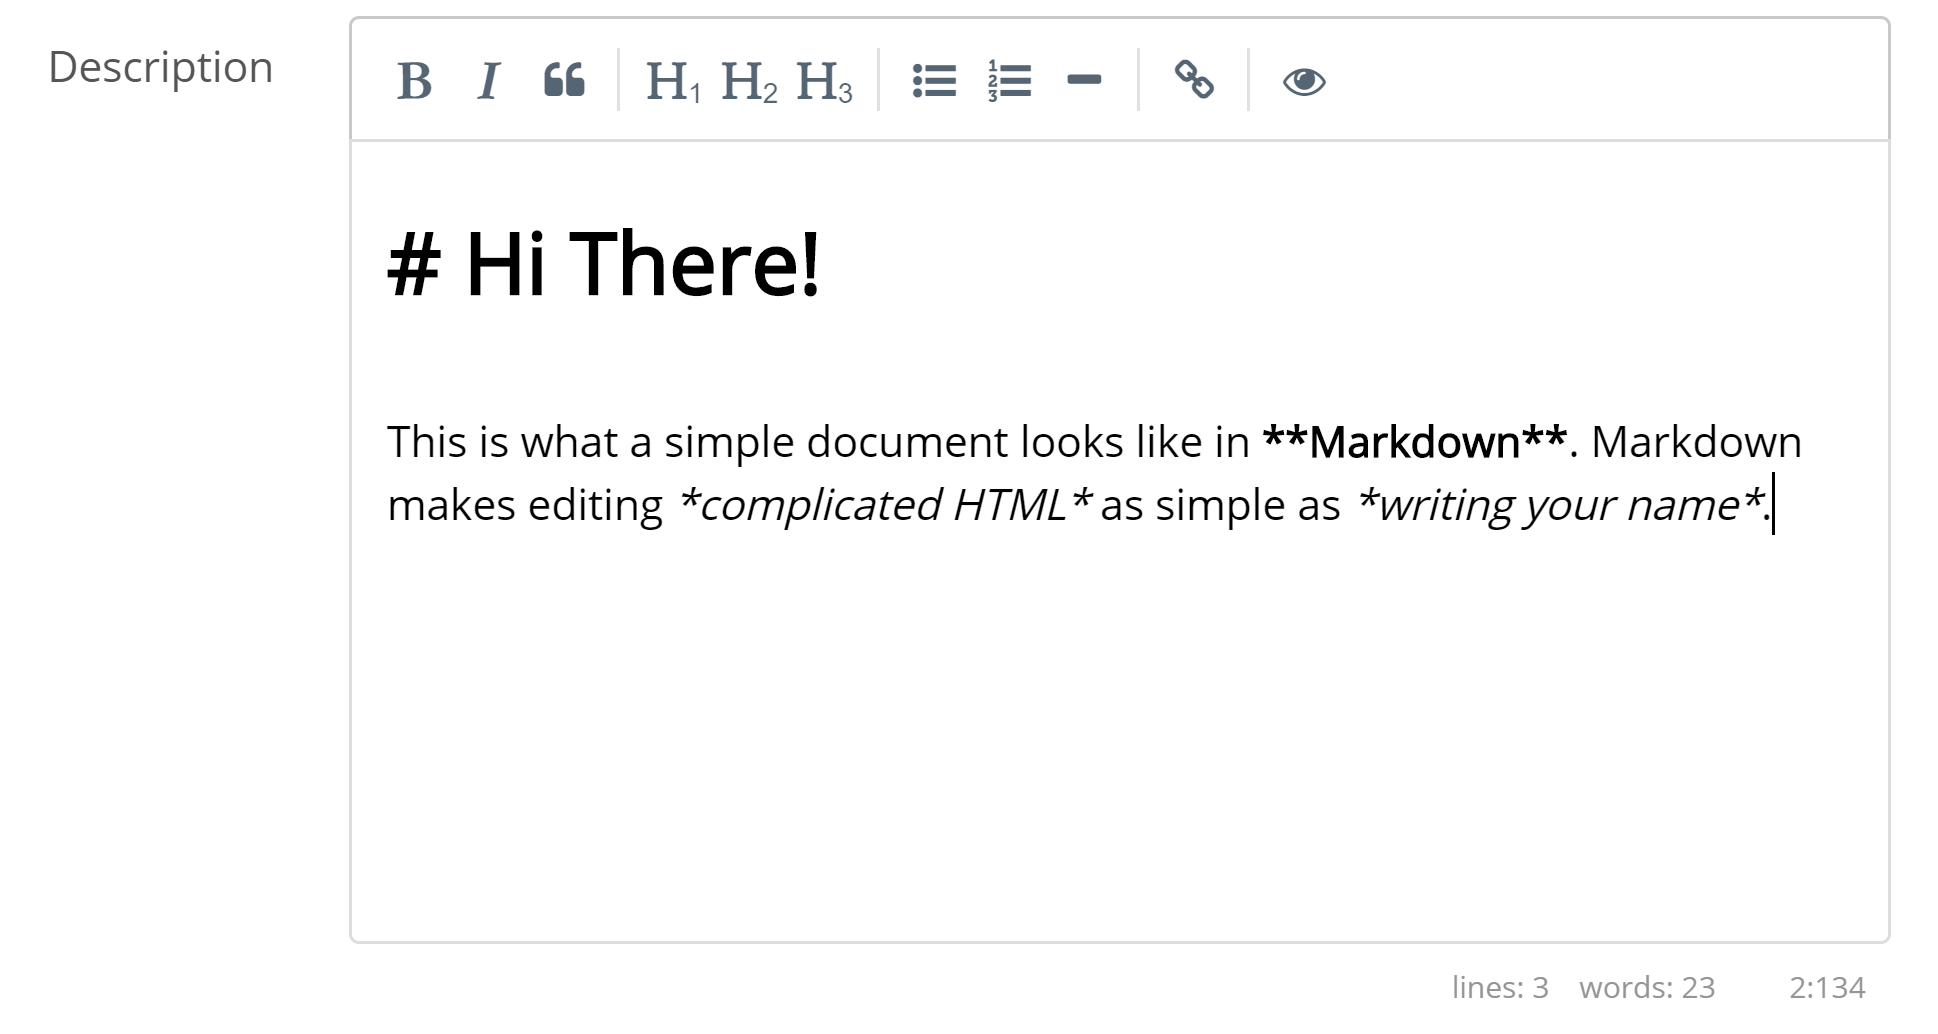 Markdown HTML Now Available We have updated the Front Desk and Booking Engine so that you can now edit room descriptions and booking engine additions in Markdown HTML! This is a significant improvement that will allow you to further personalize your booking engine to your hotel brand.